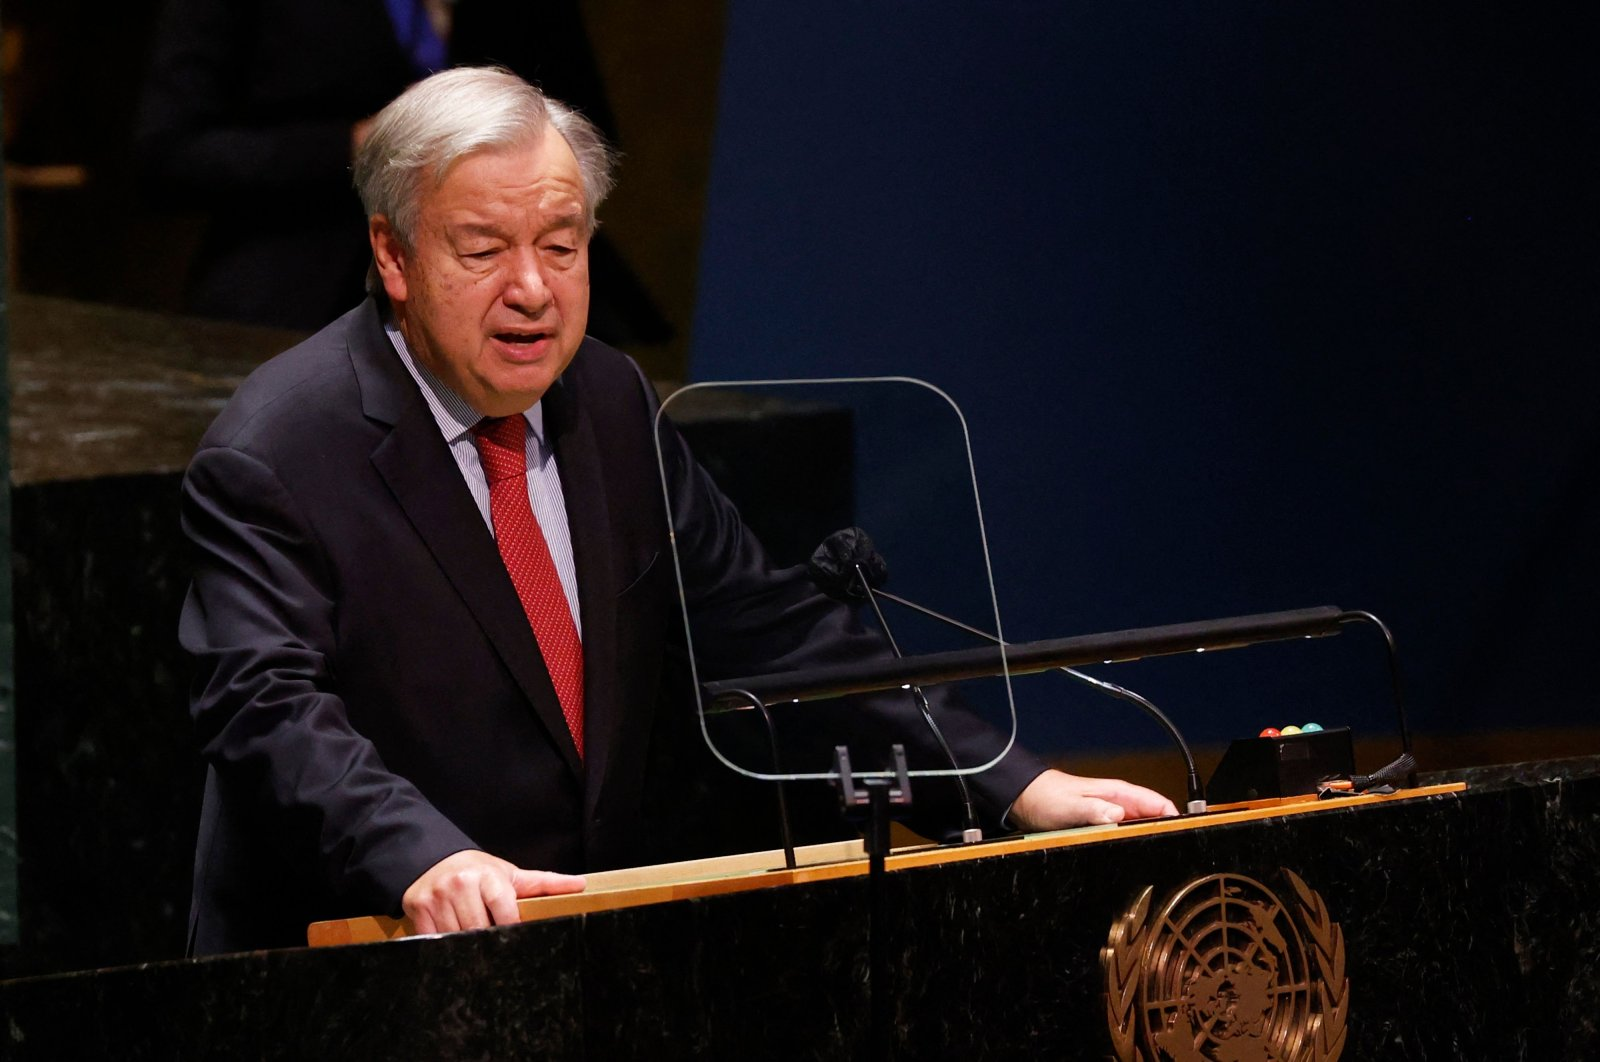 United Nations Secretary-General Antonio Guterres speaks at a high-level meeting to commemorate the 20th anniversary of the adoption of the Durban Declaration and Programme of Action, at the U.N. headquarters in New York City, U.S., Sept. 22, 2021. (AFP Photo)